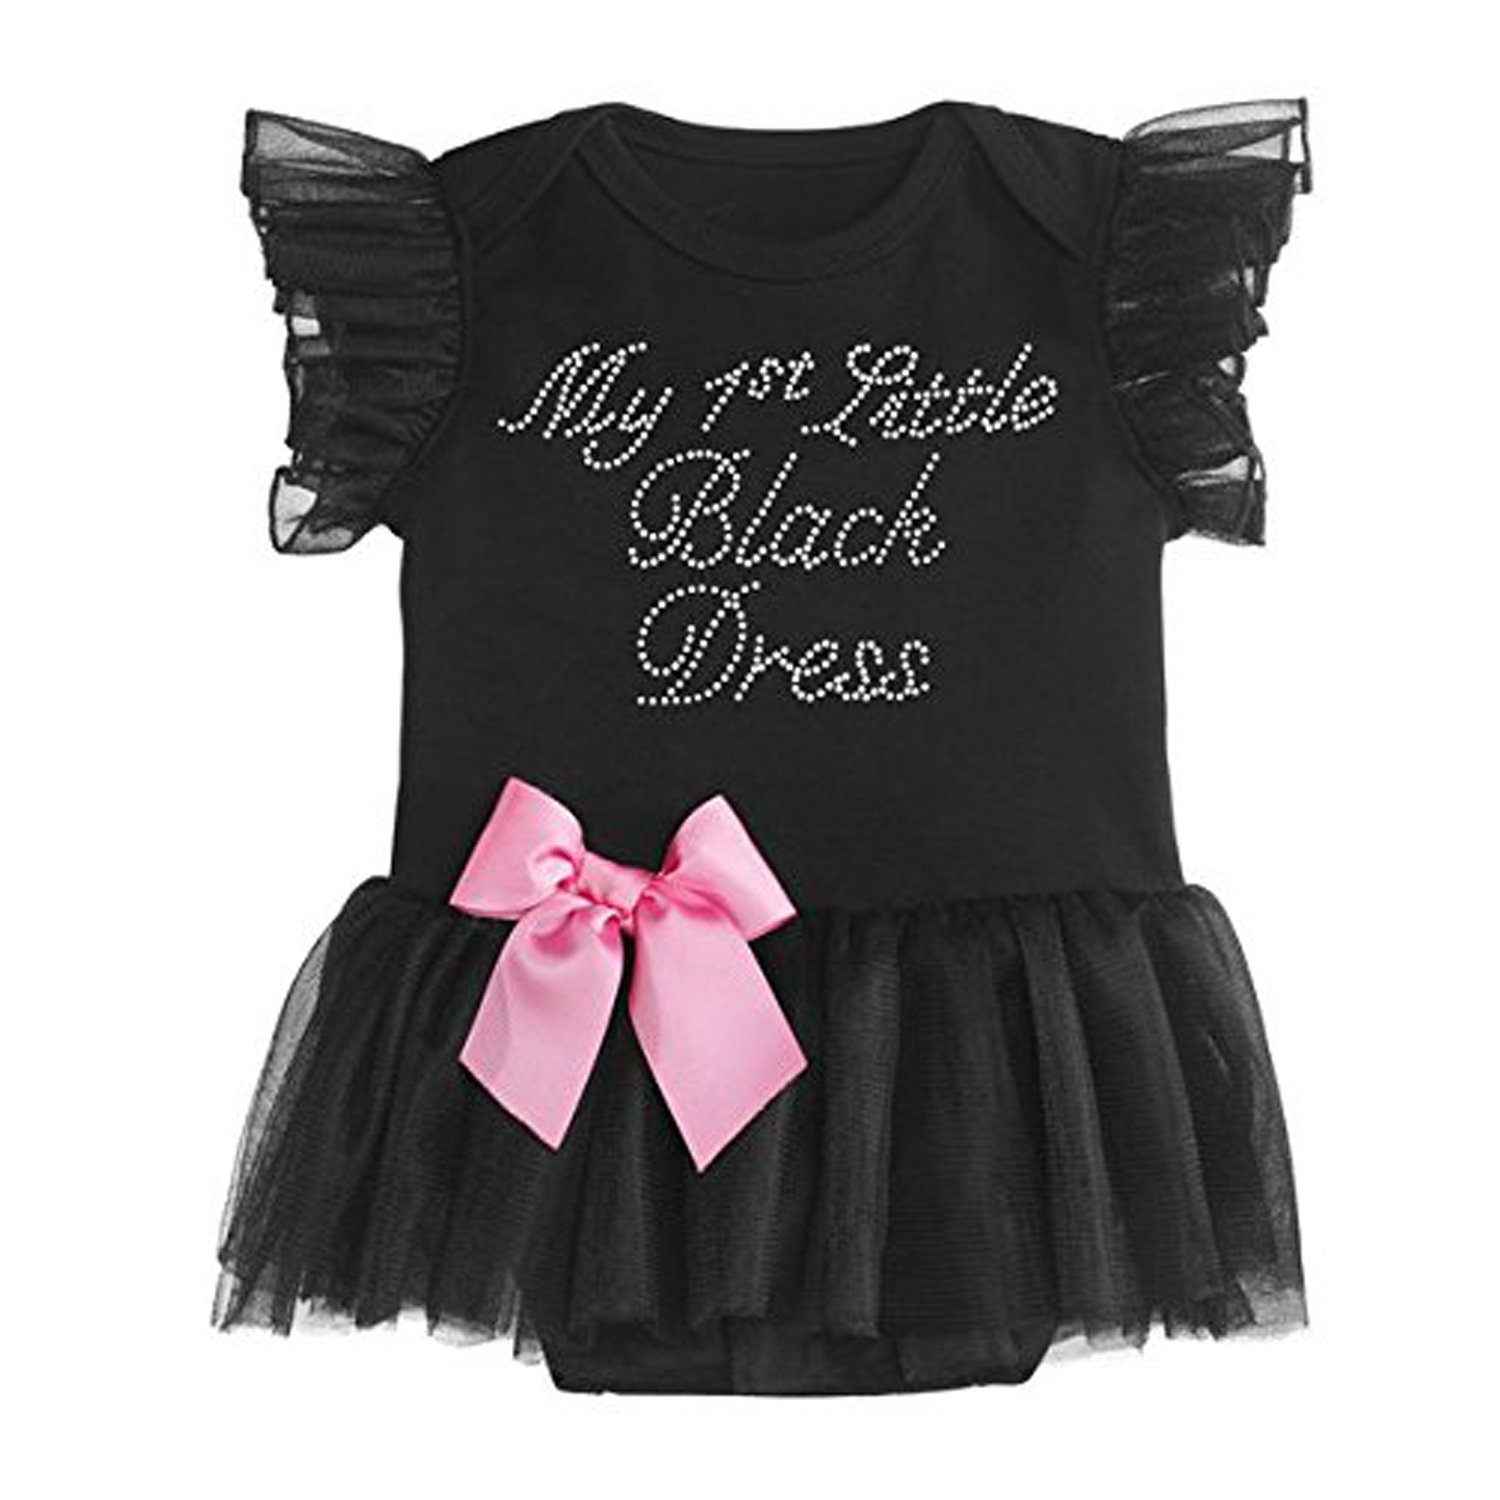 My 1st Little Black Dress Infant Onesie With Pink Bow - By Ganz (0-6 Months) ER38058